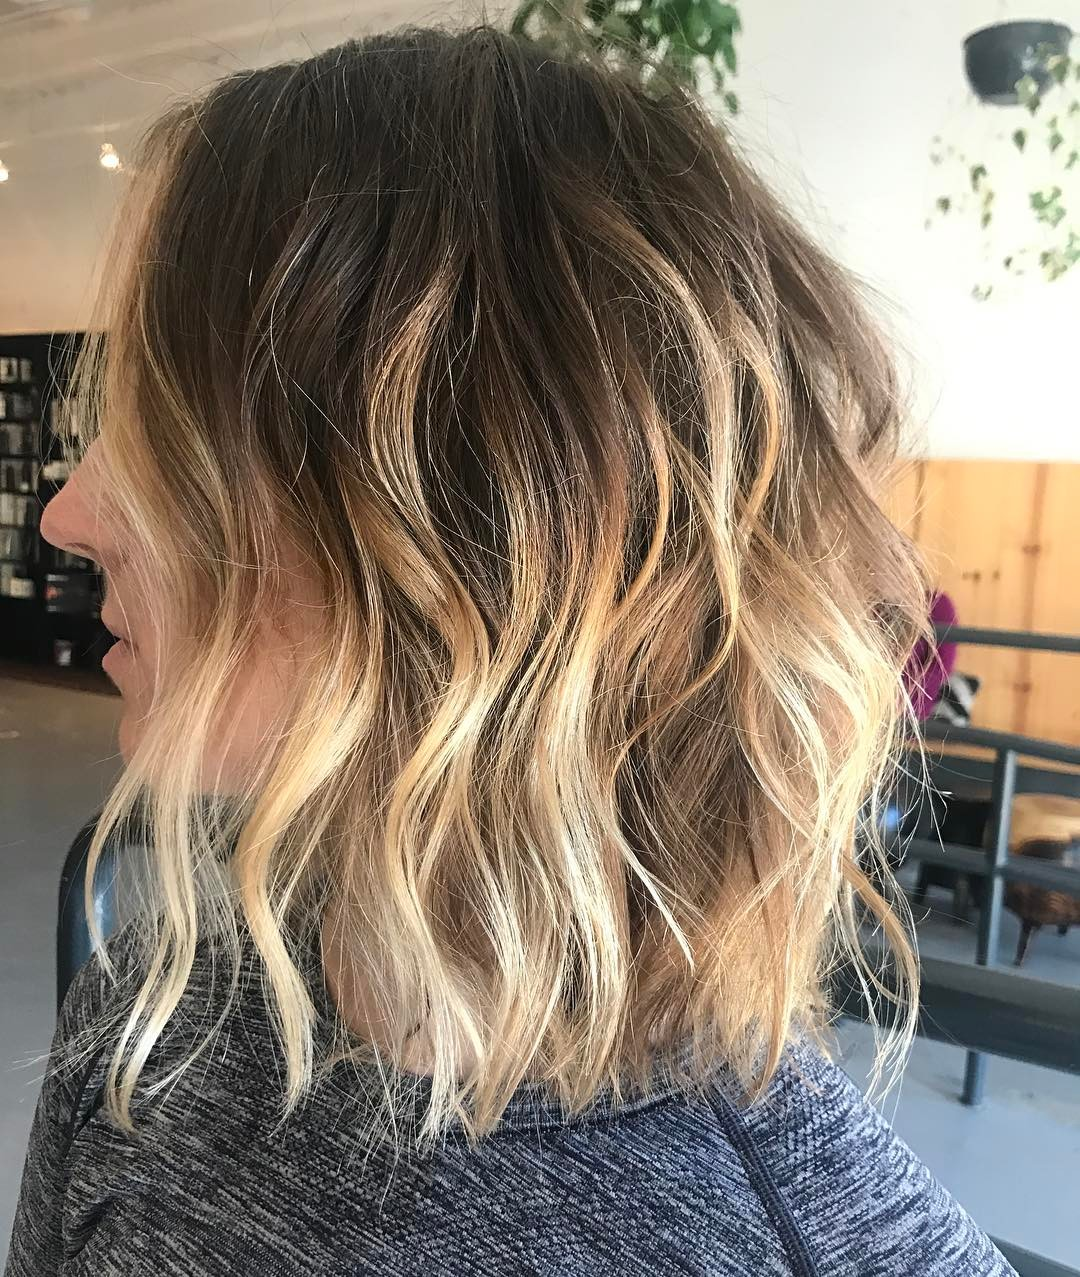 30 chic everyday hairstyles for shoulder length hair: medium